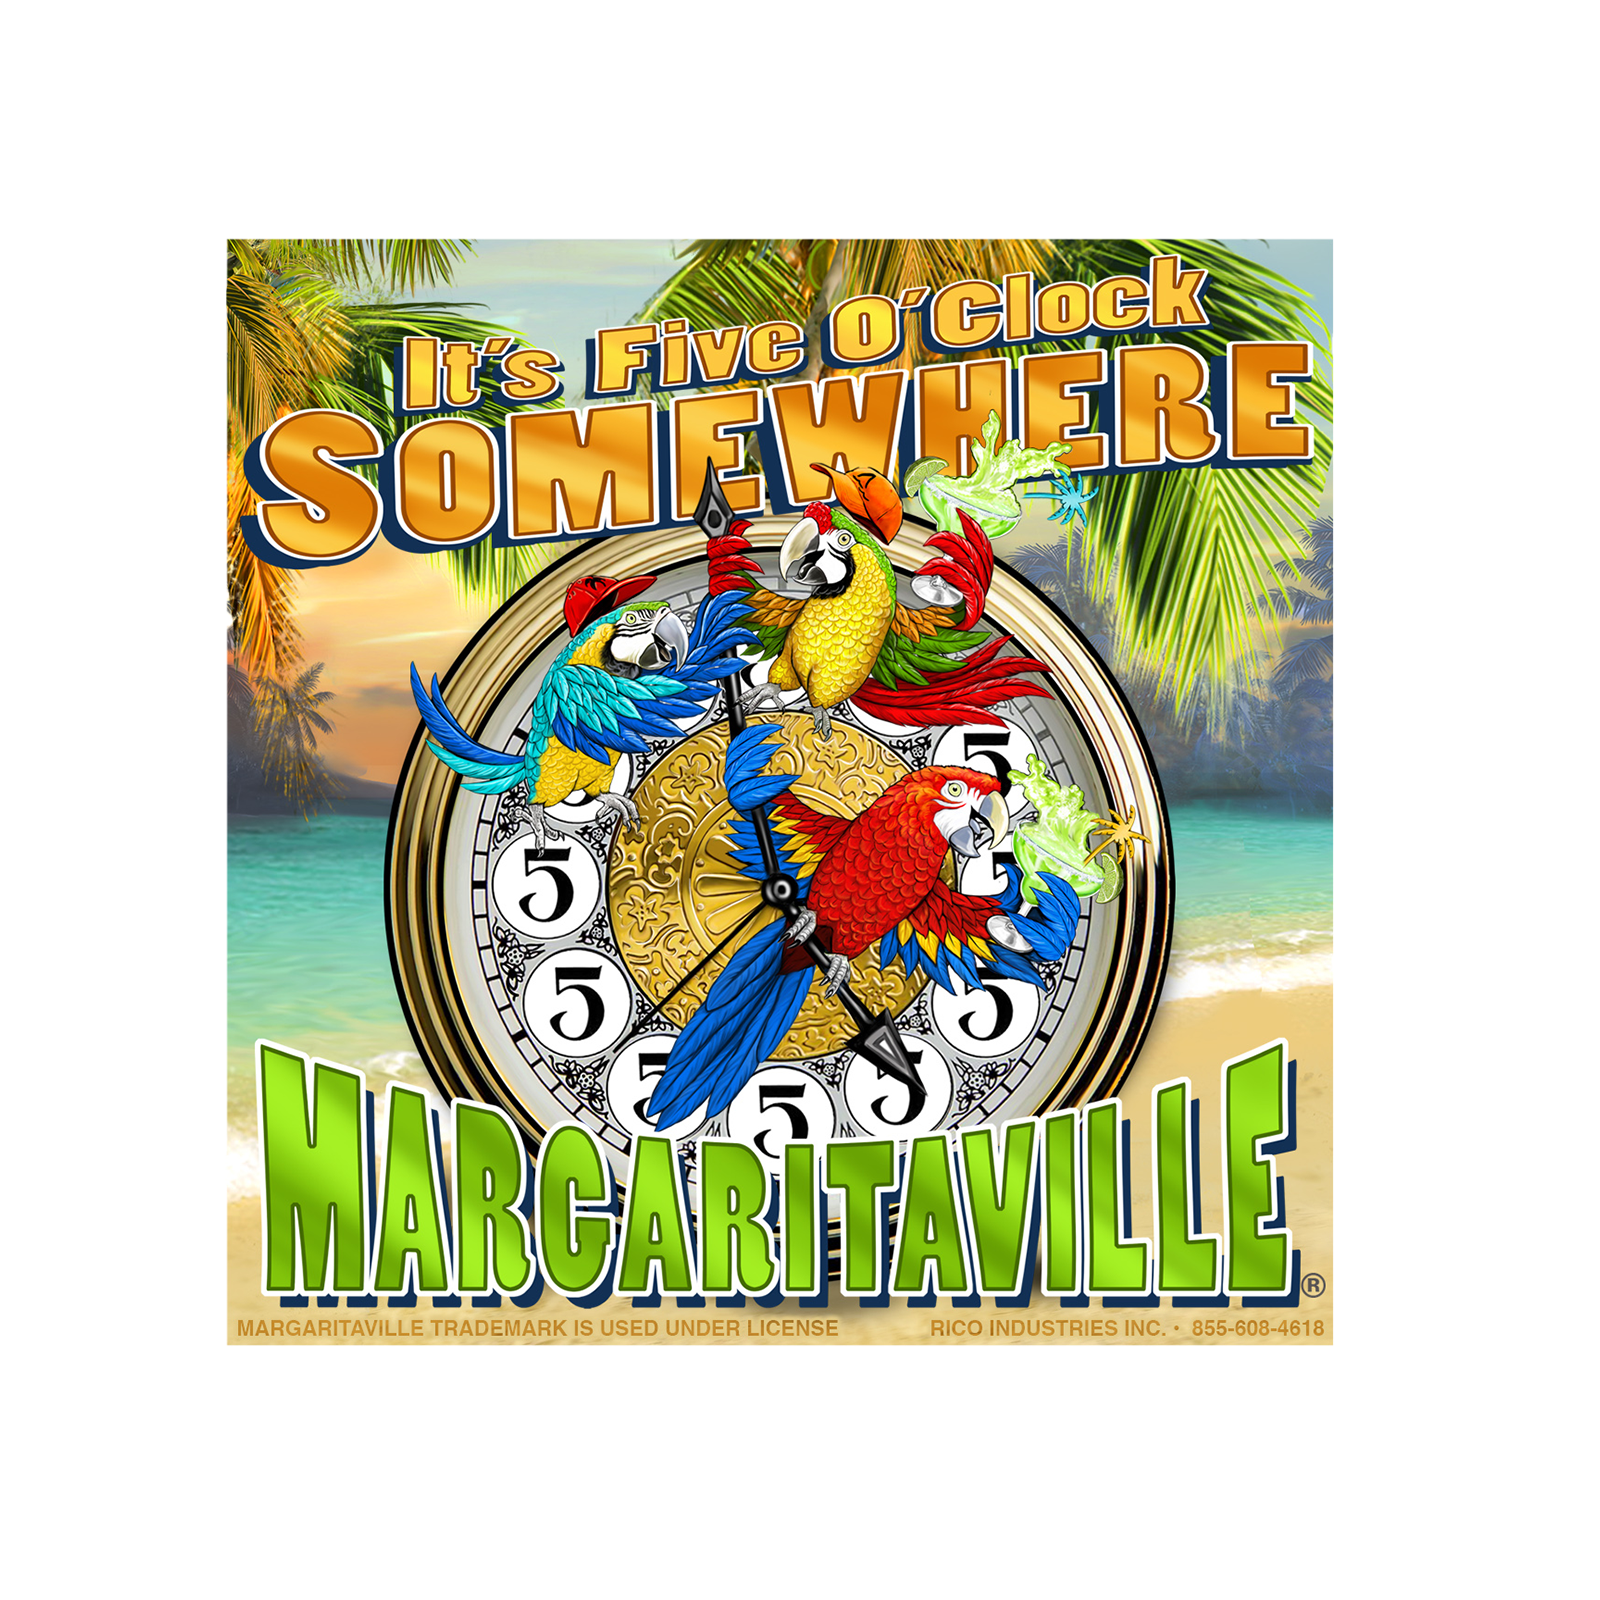 16a74d8740ace FIVE O CLOCK WOOD CRATE 4X4 - Margaritaville Apparel Store